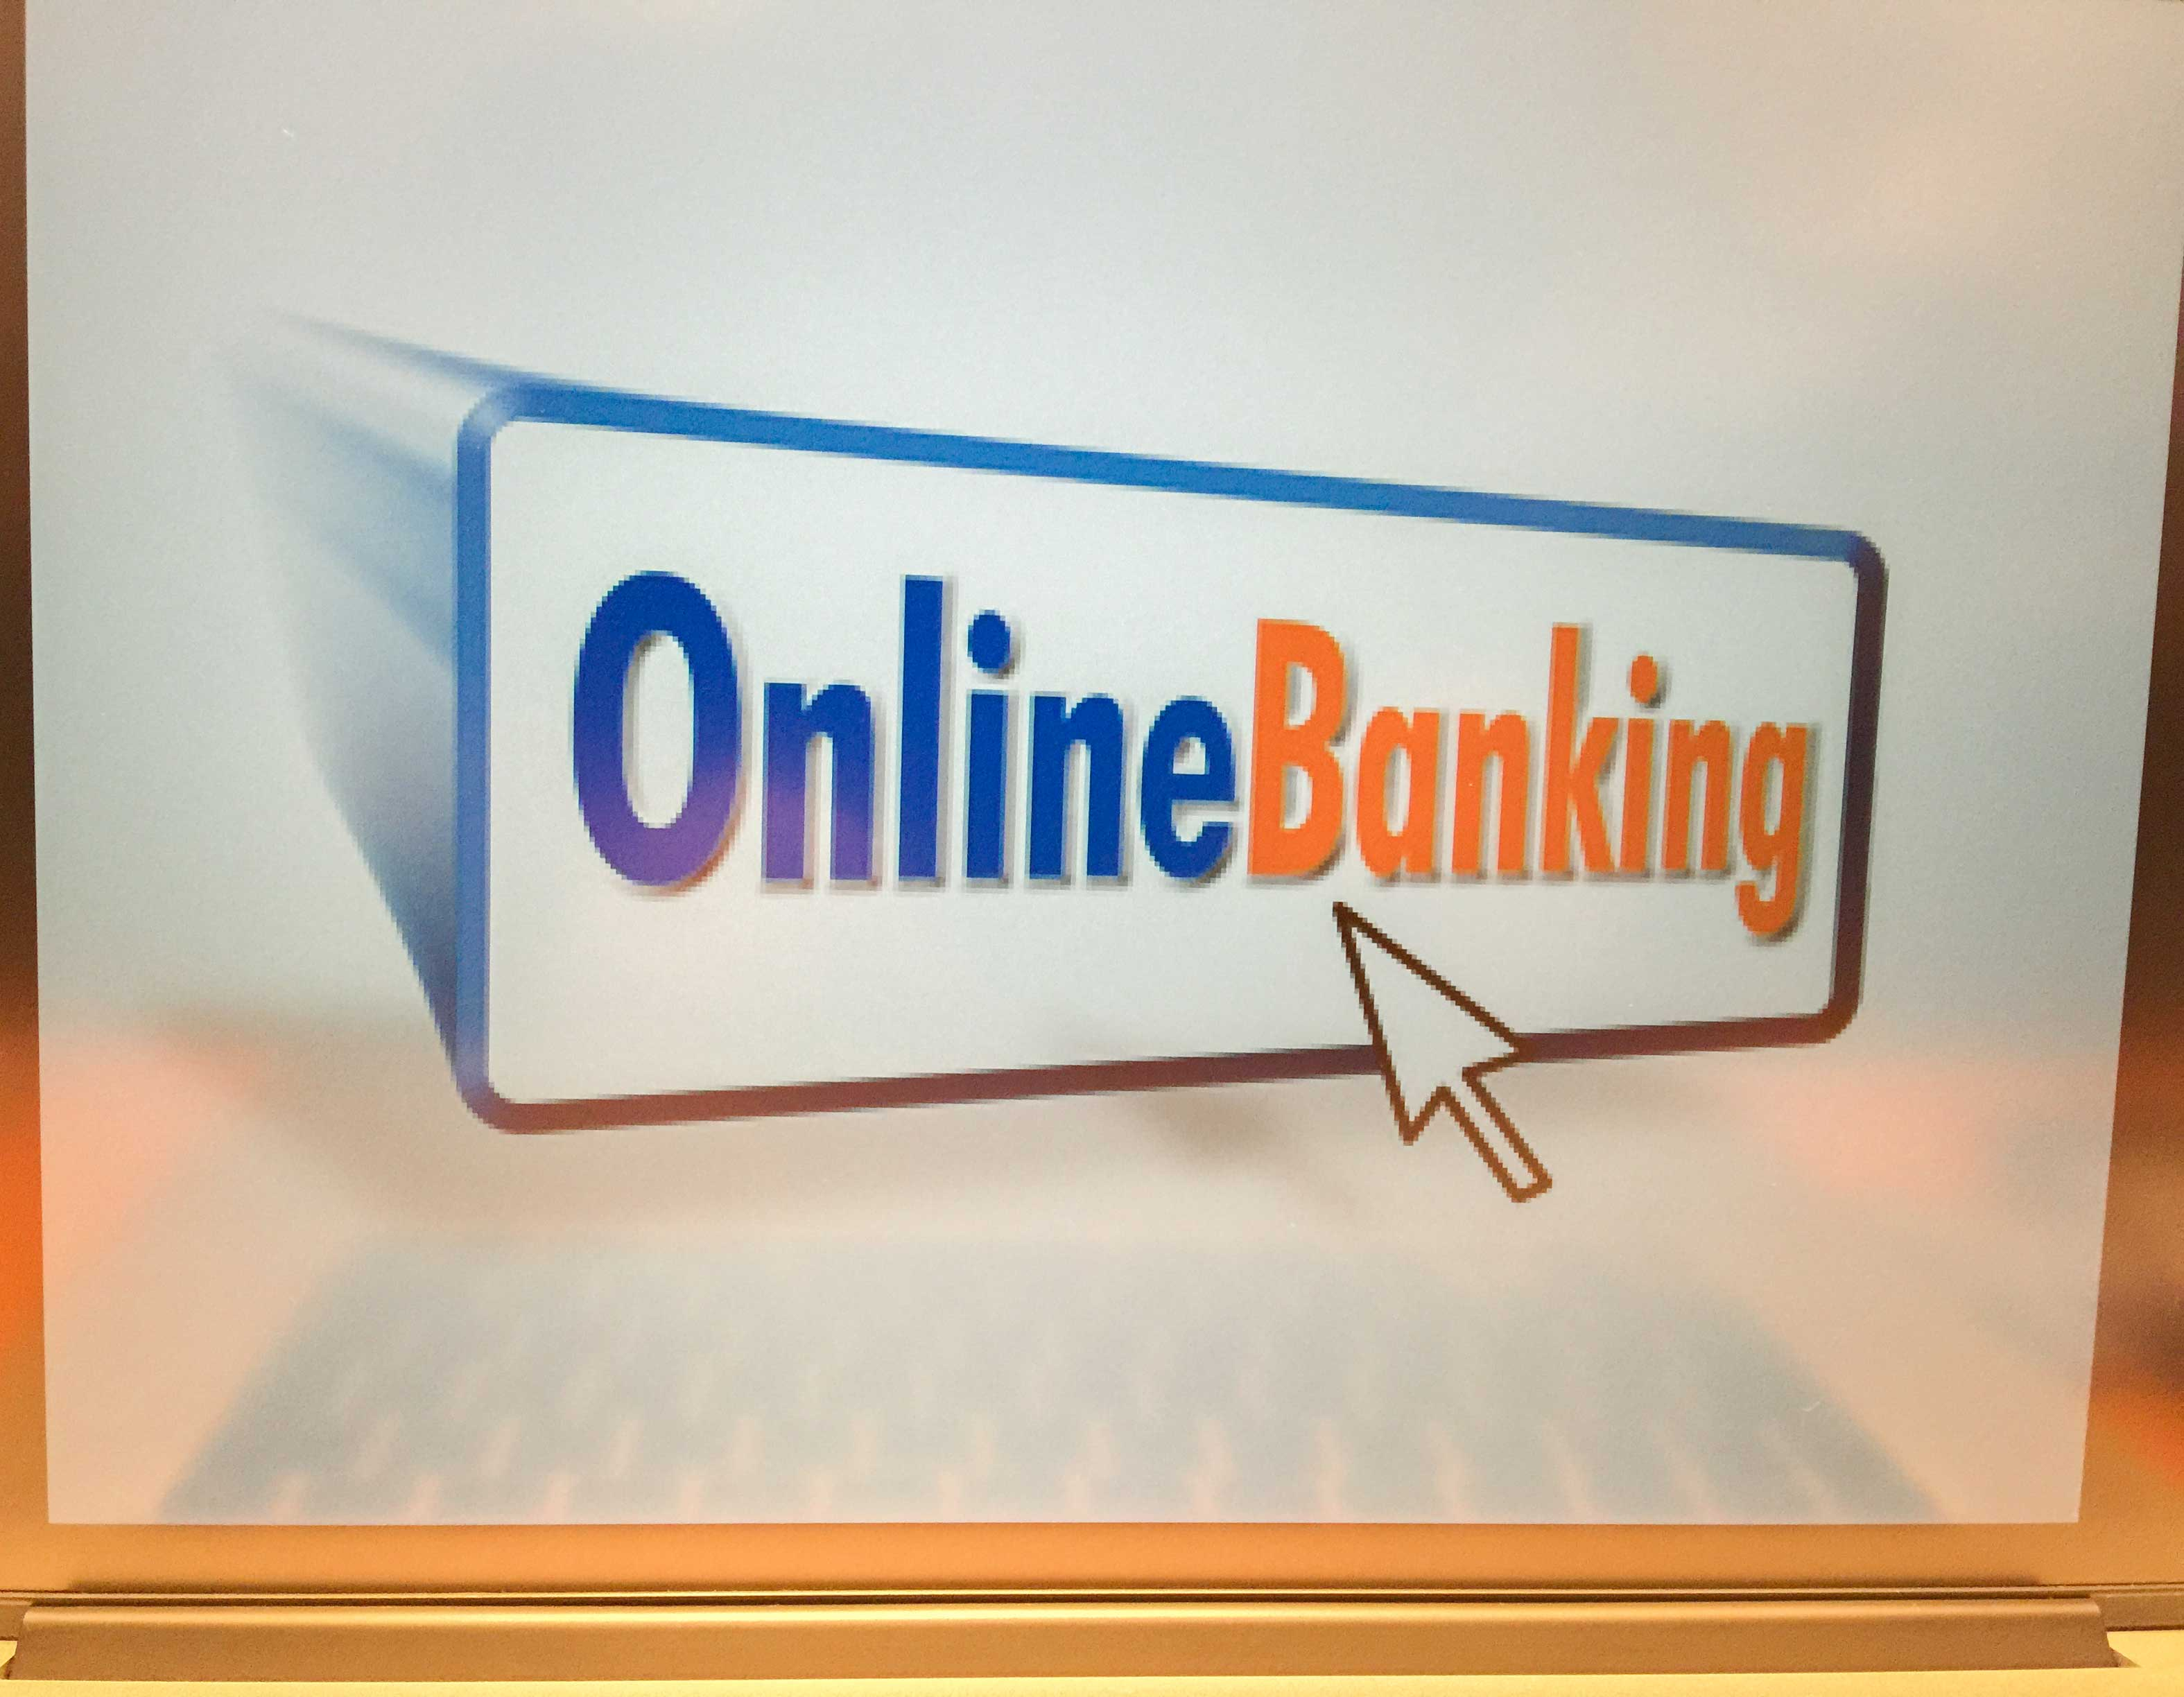 e banking services offered by banks